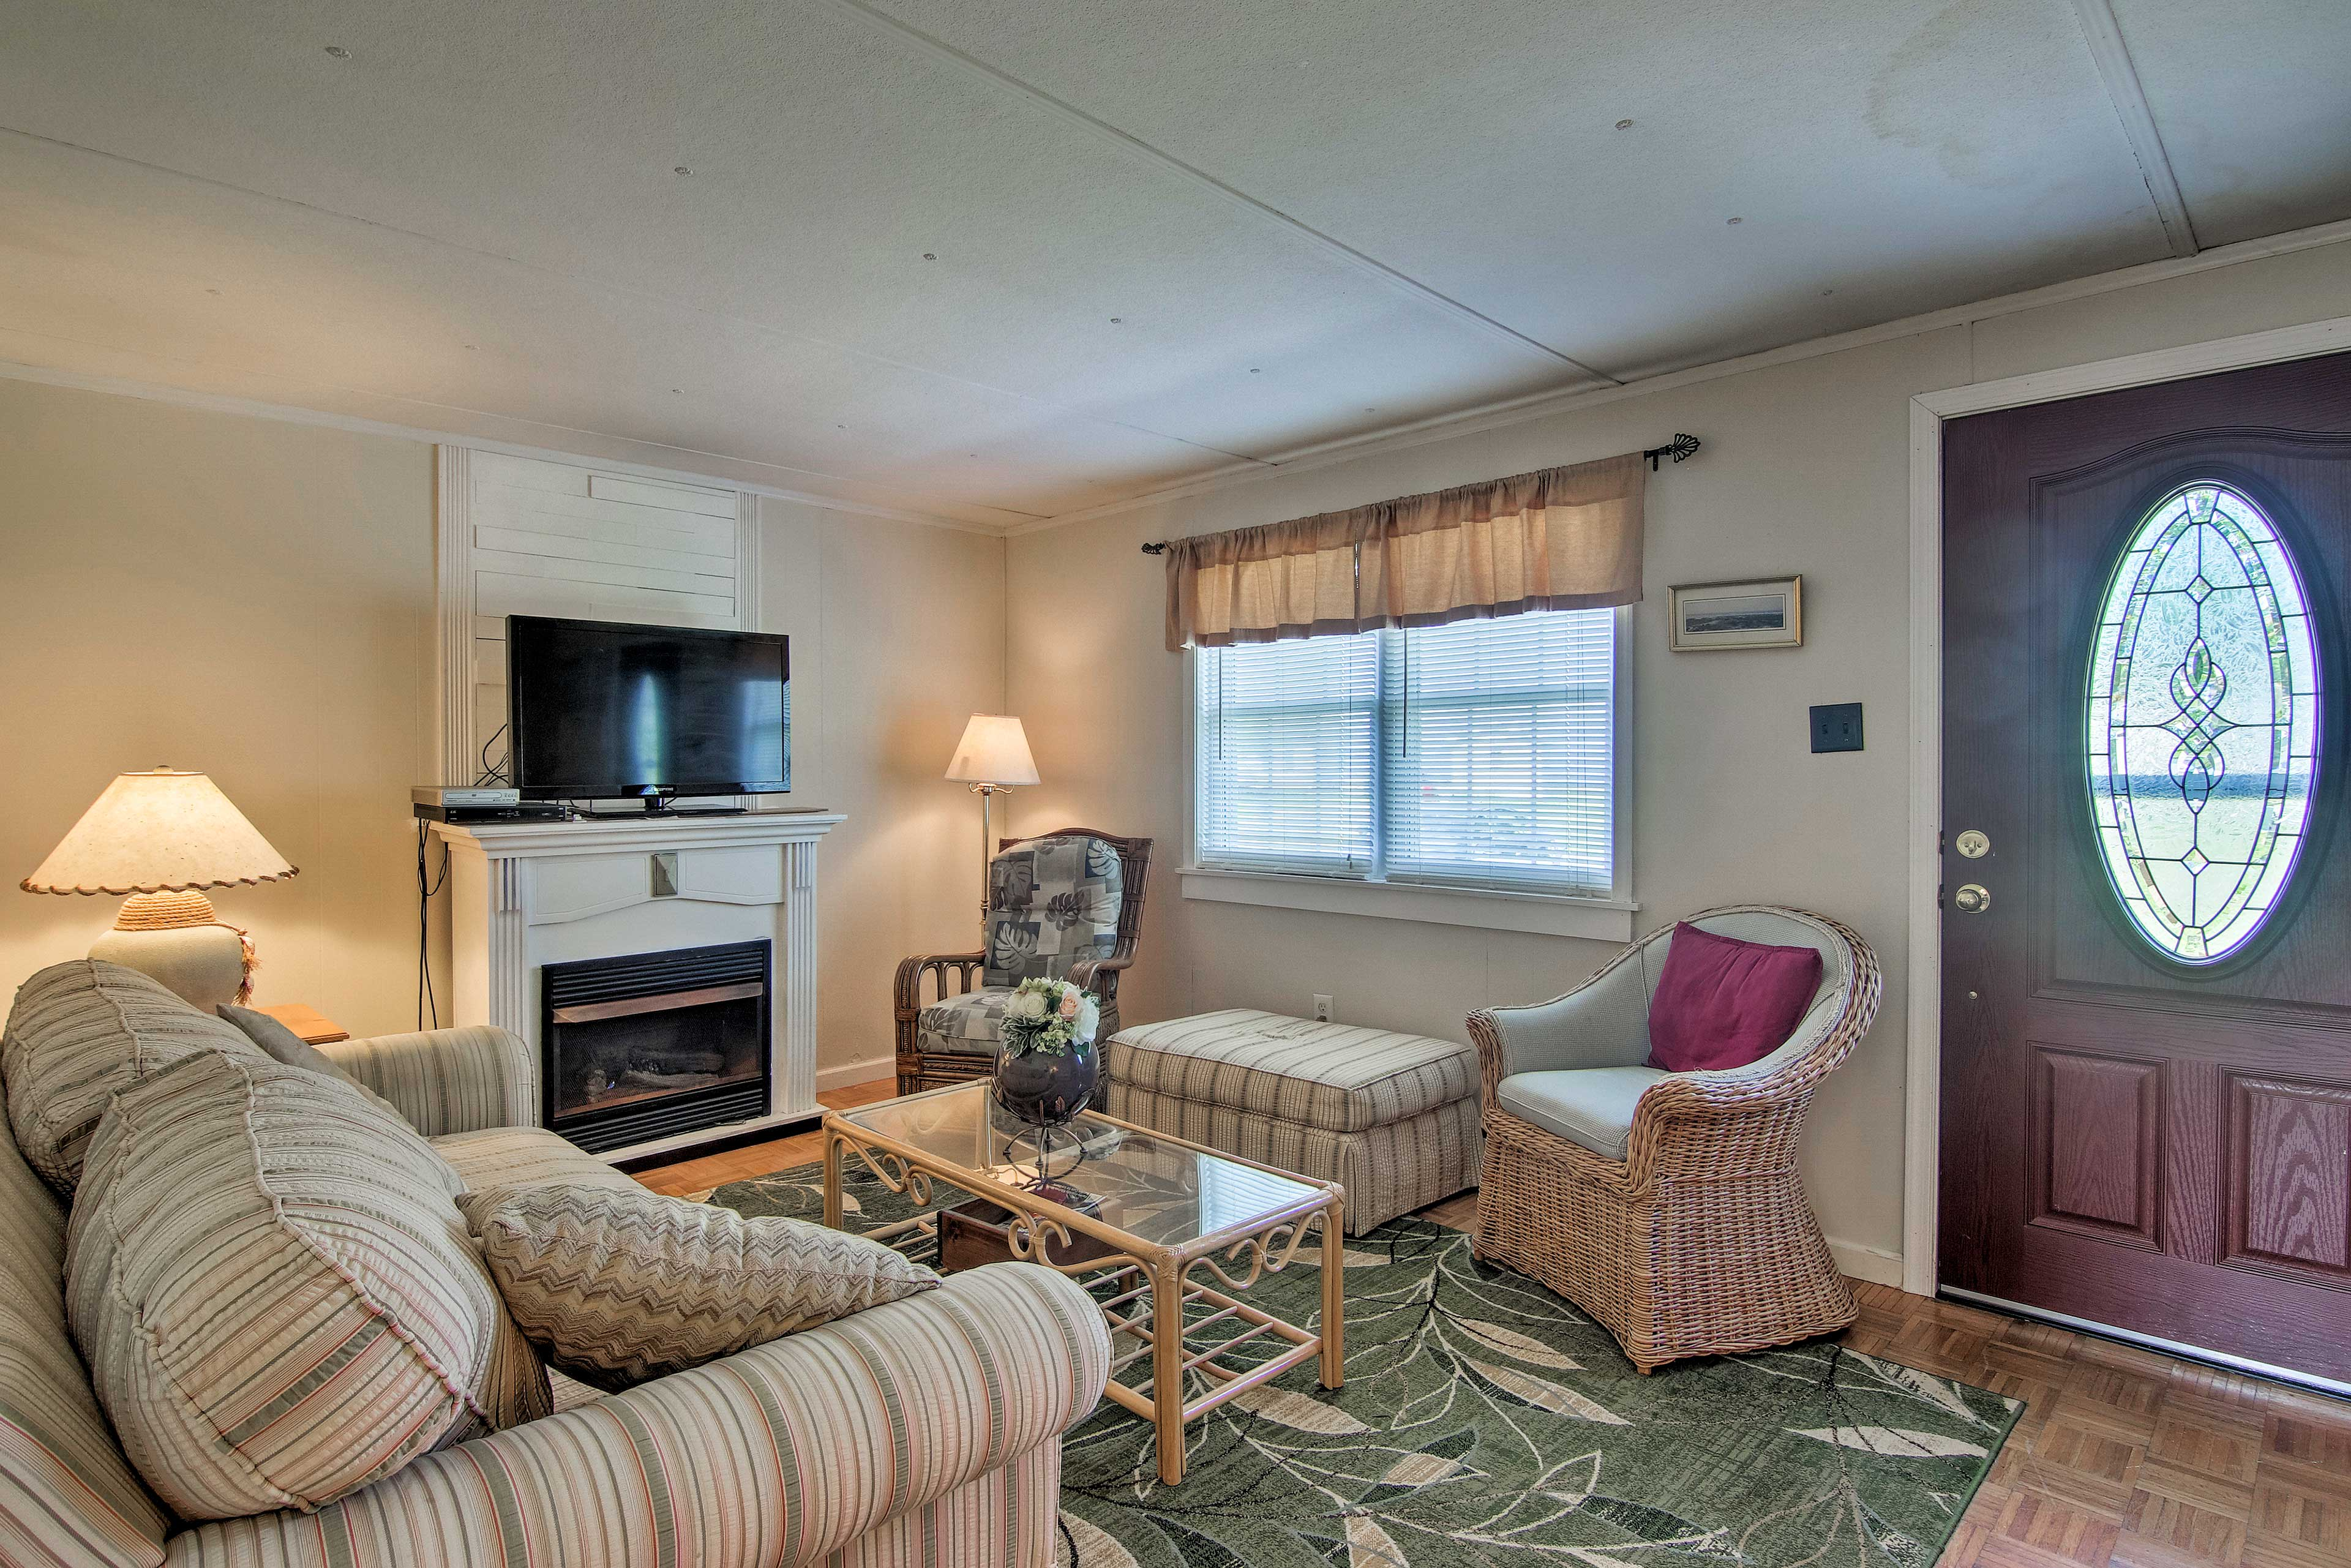 The family room includes a flat-screen TV.